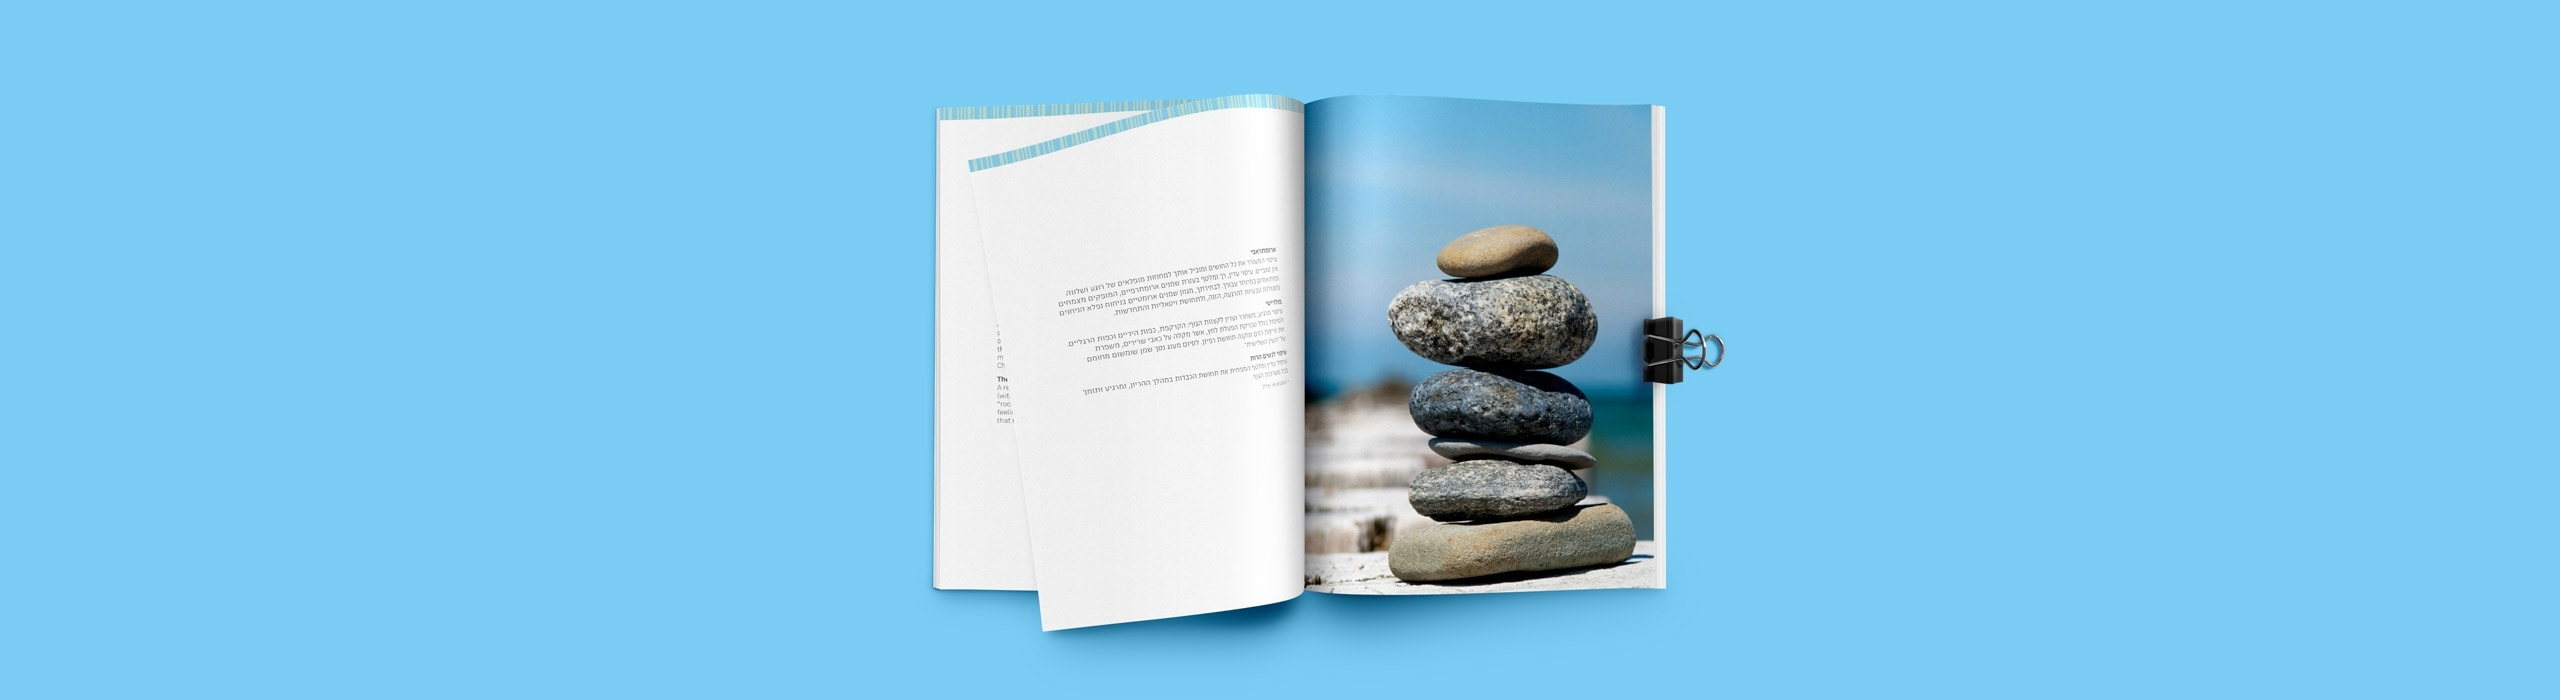 Elma - natie-elma-spa-brochure - Natie Branding Agency